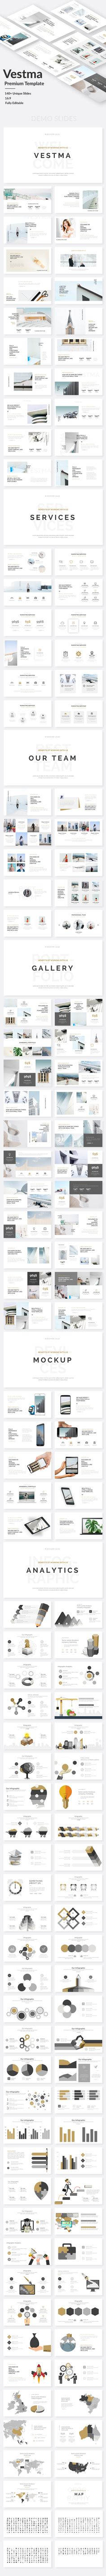 Vestma Creative Premium Powerpoint Template — Powerpoint PPT #pptx #pitch deck • Download ➝ https://graphicriver.net/item/vestma-creative-premium-powerpoint-template/21399793?ref=pxcr